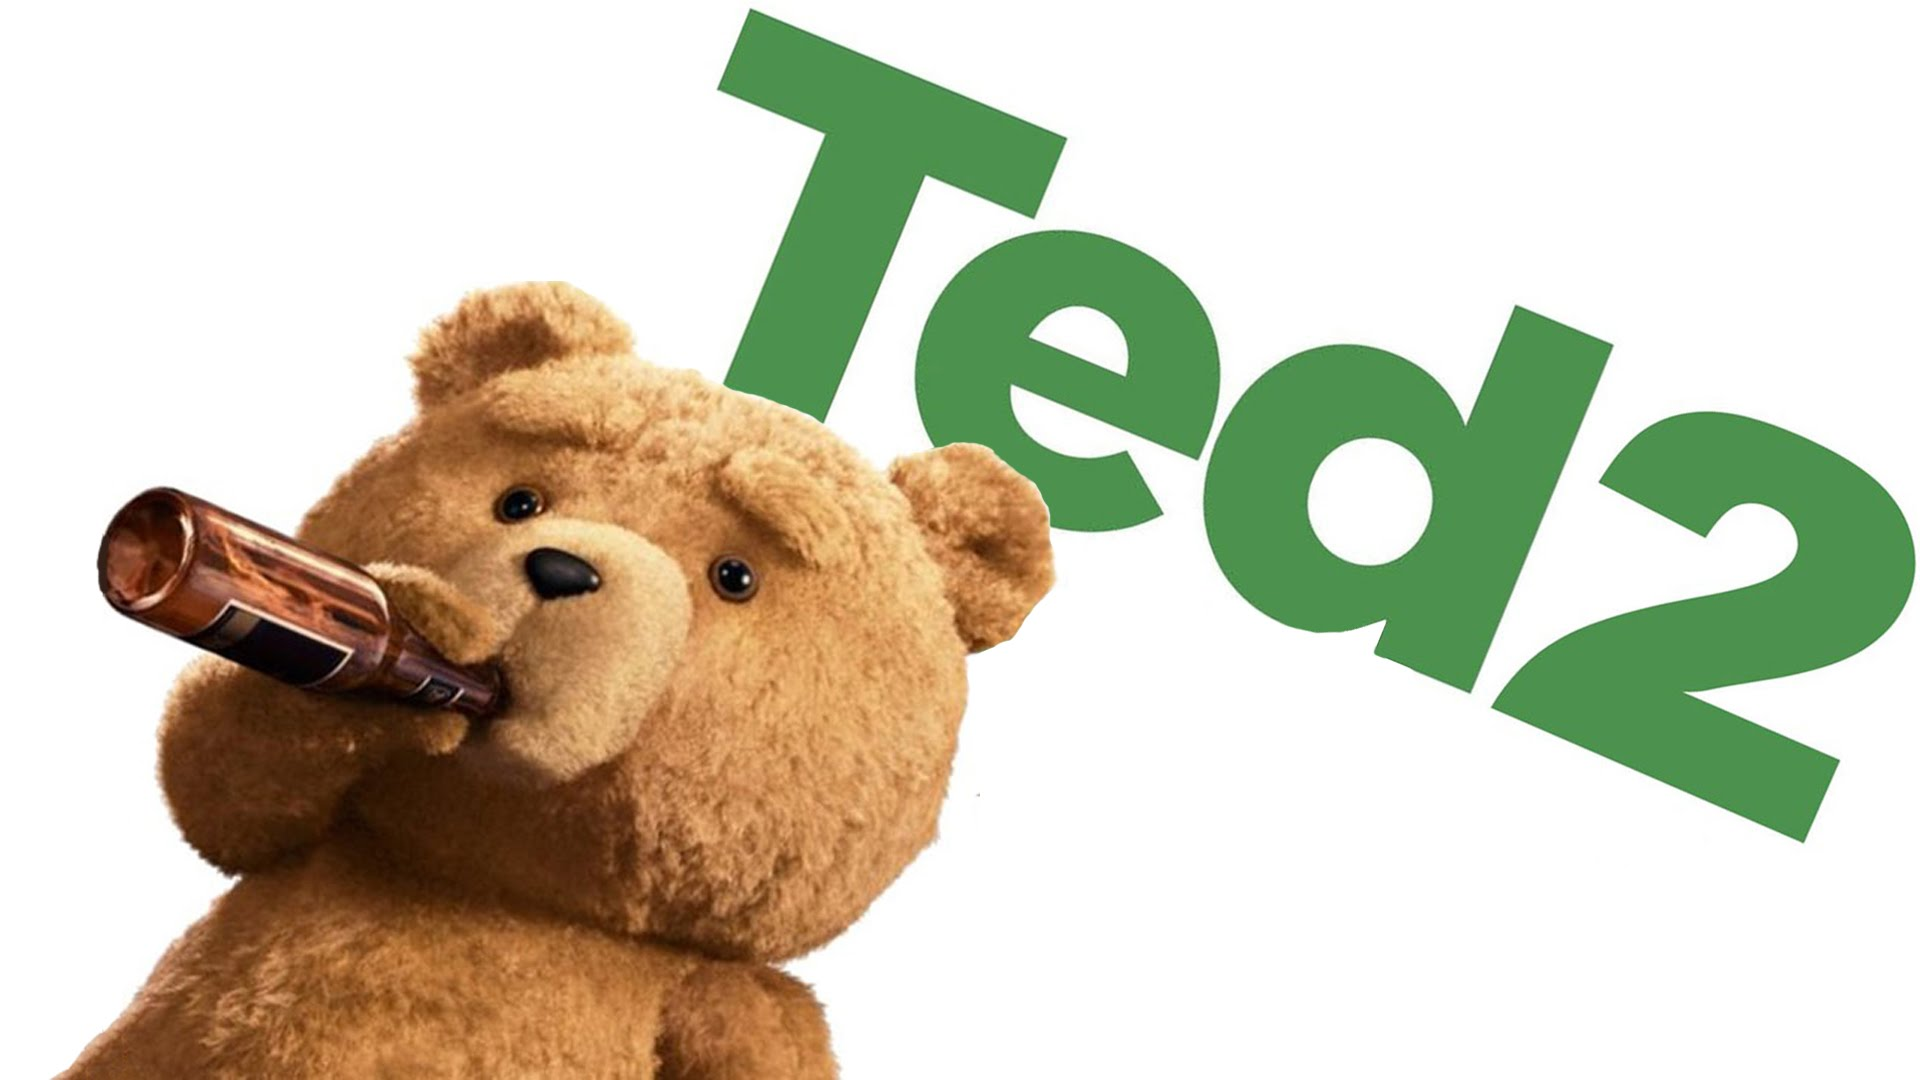 Ted in TED 2